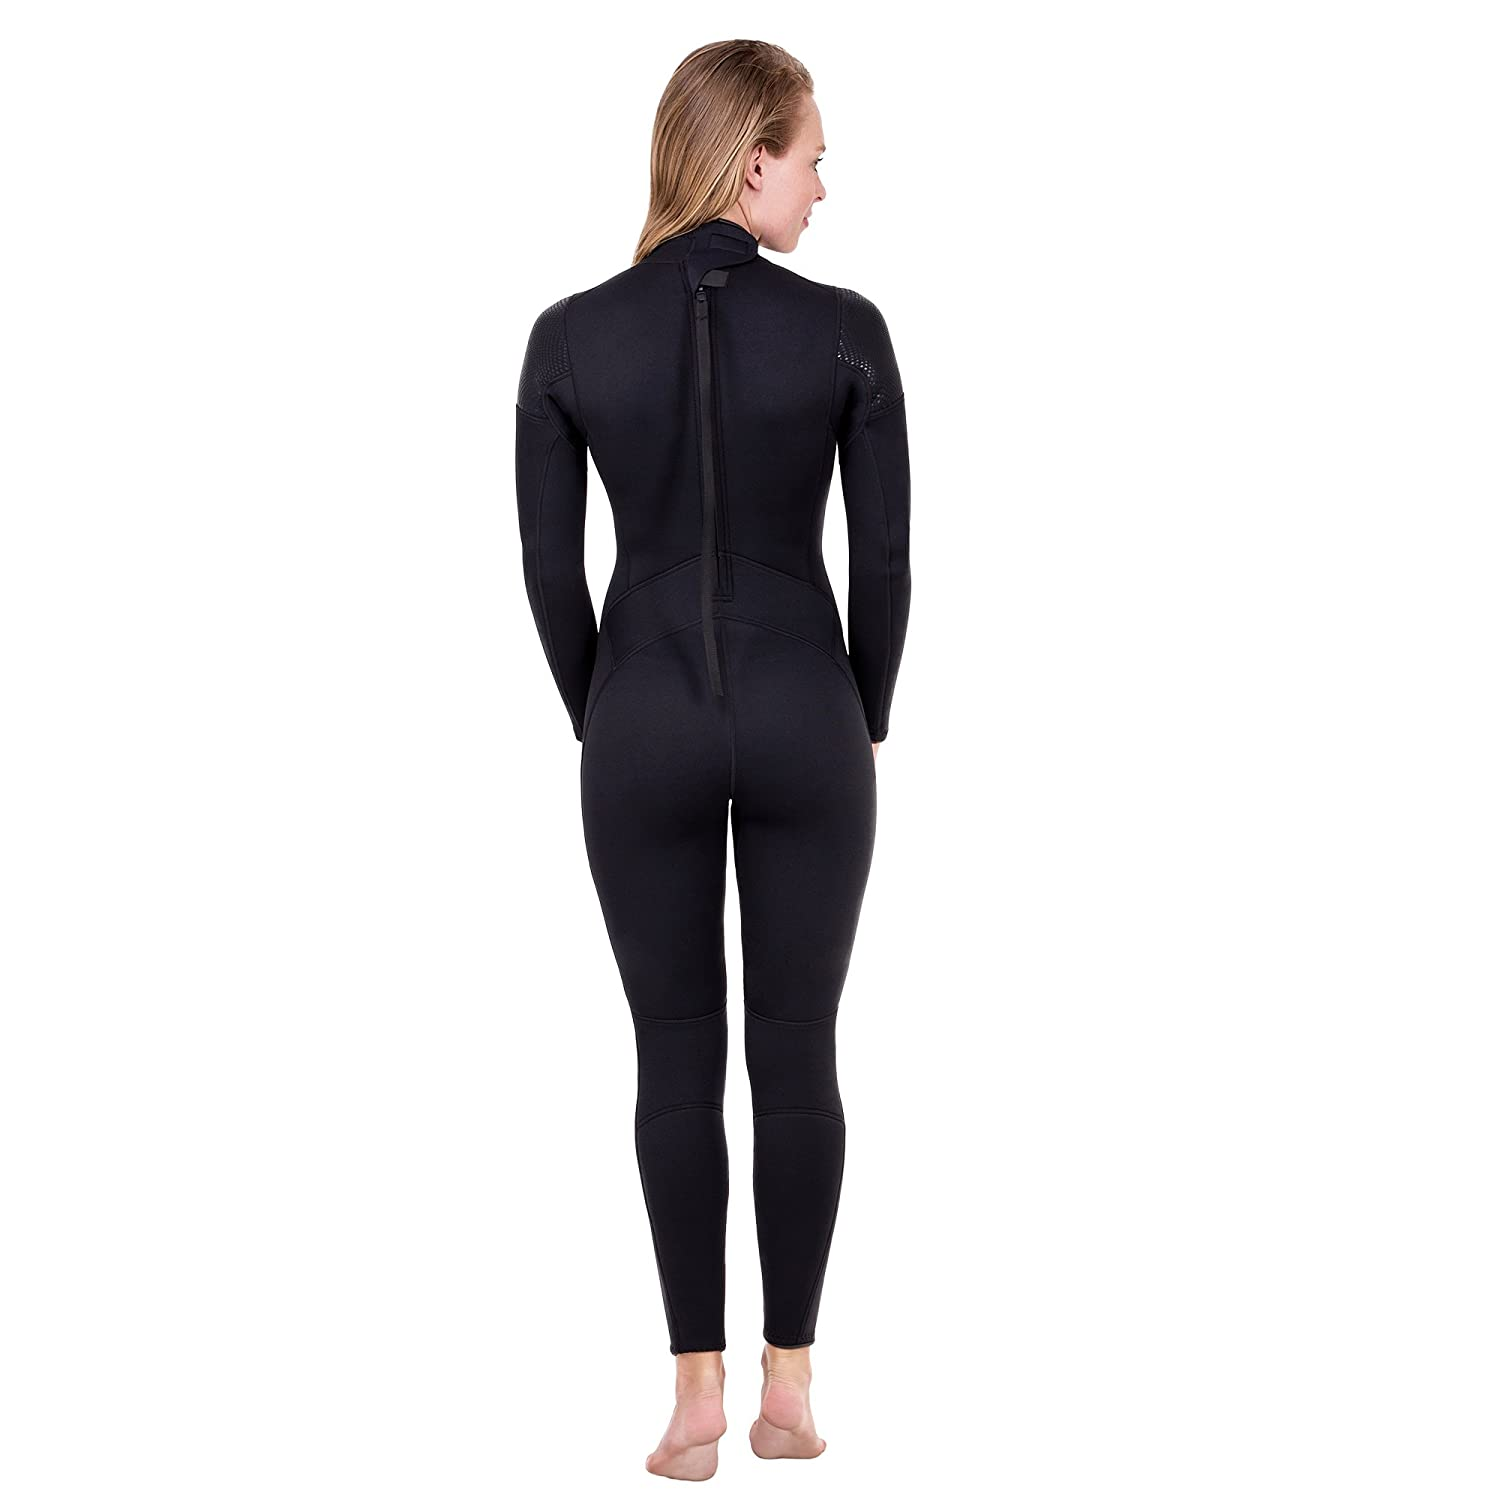 Seavenger Odyssey 3mm Neoprene Wetsuit with Stretch Panels for Snorkeling Surfing in Mens and Womens Sizes Scuba Diving